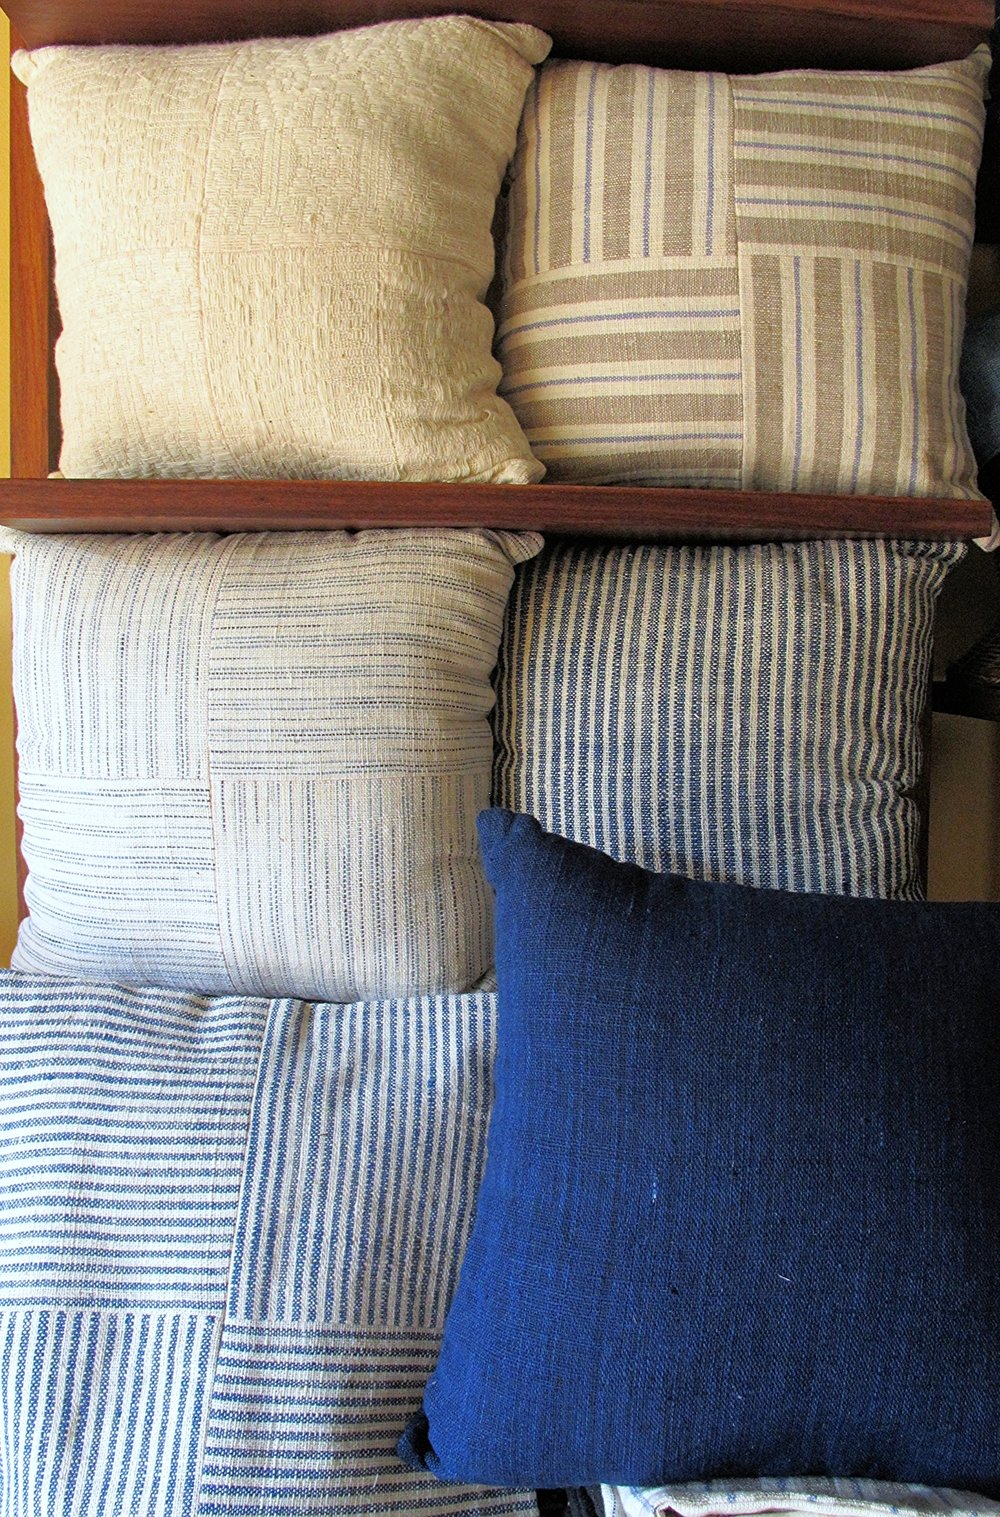 [Natural colors in peach yellow and indigo blue, in easy even stripes, cozy and soft squeezed together. Dreamy cushion covers handwoven by women of the Tai Leu ethnic group in Banayan village Laos. Also curated by Ma Te Sai.